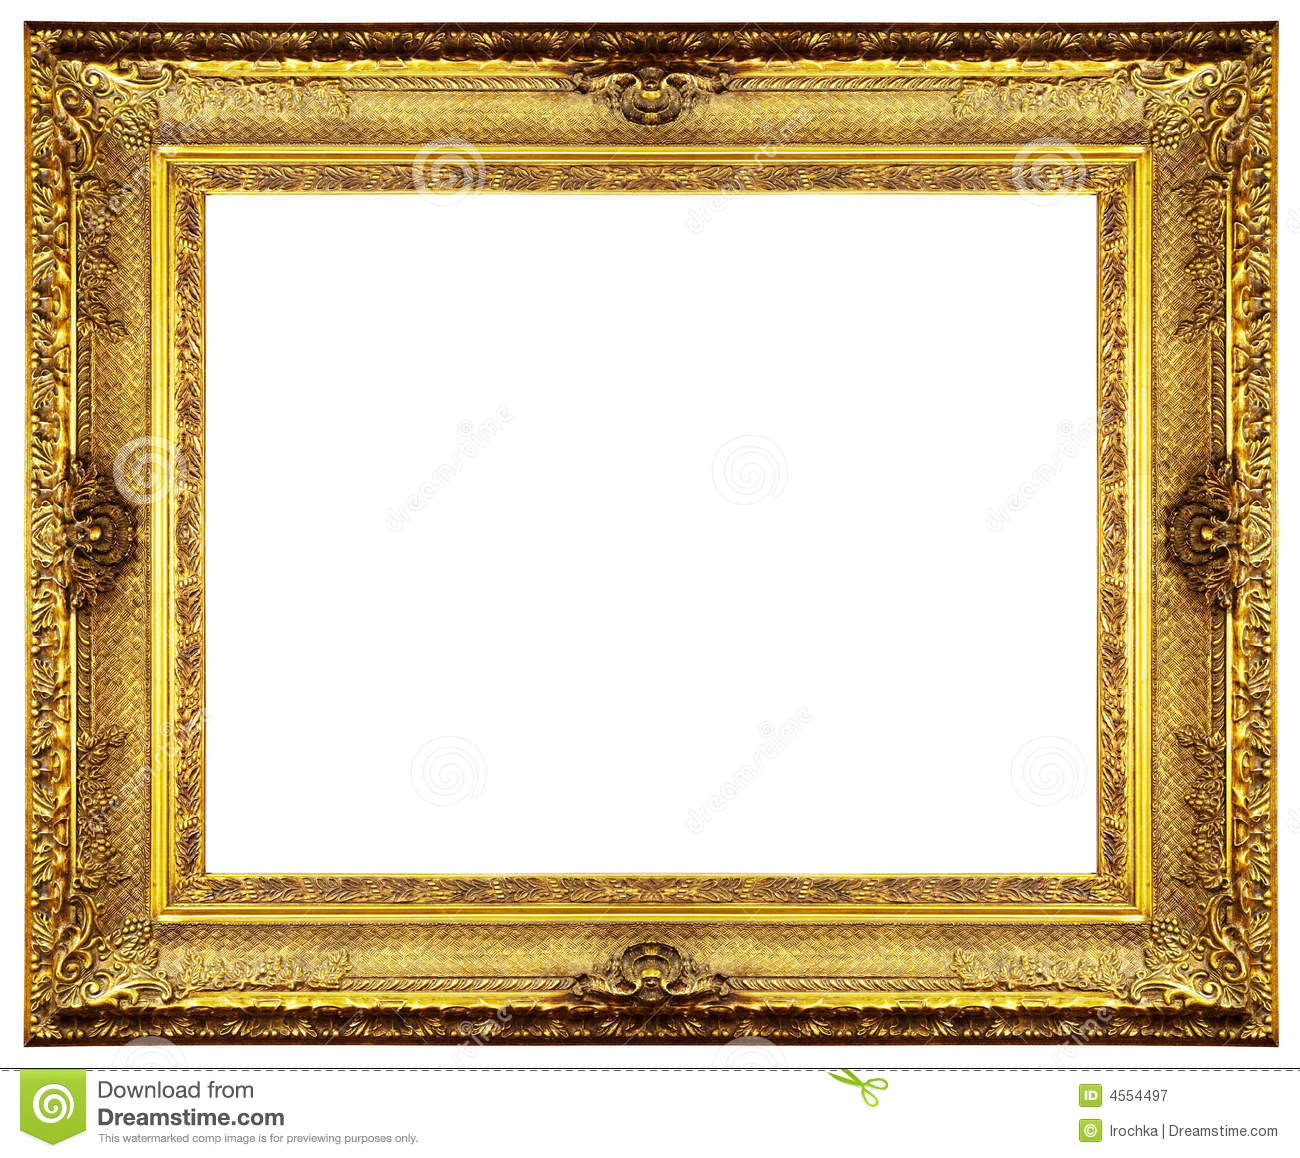 Ornate Picture Frame Clipart Images & Pictures - Becuo: becuo.com/ornate-picture-frame-clipart